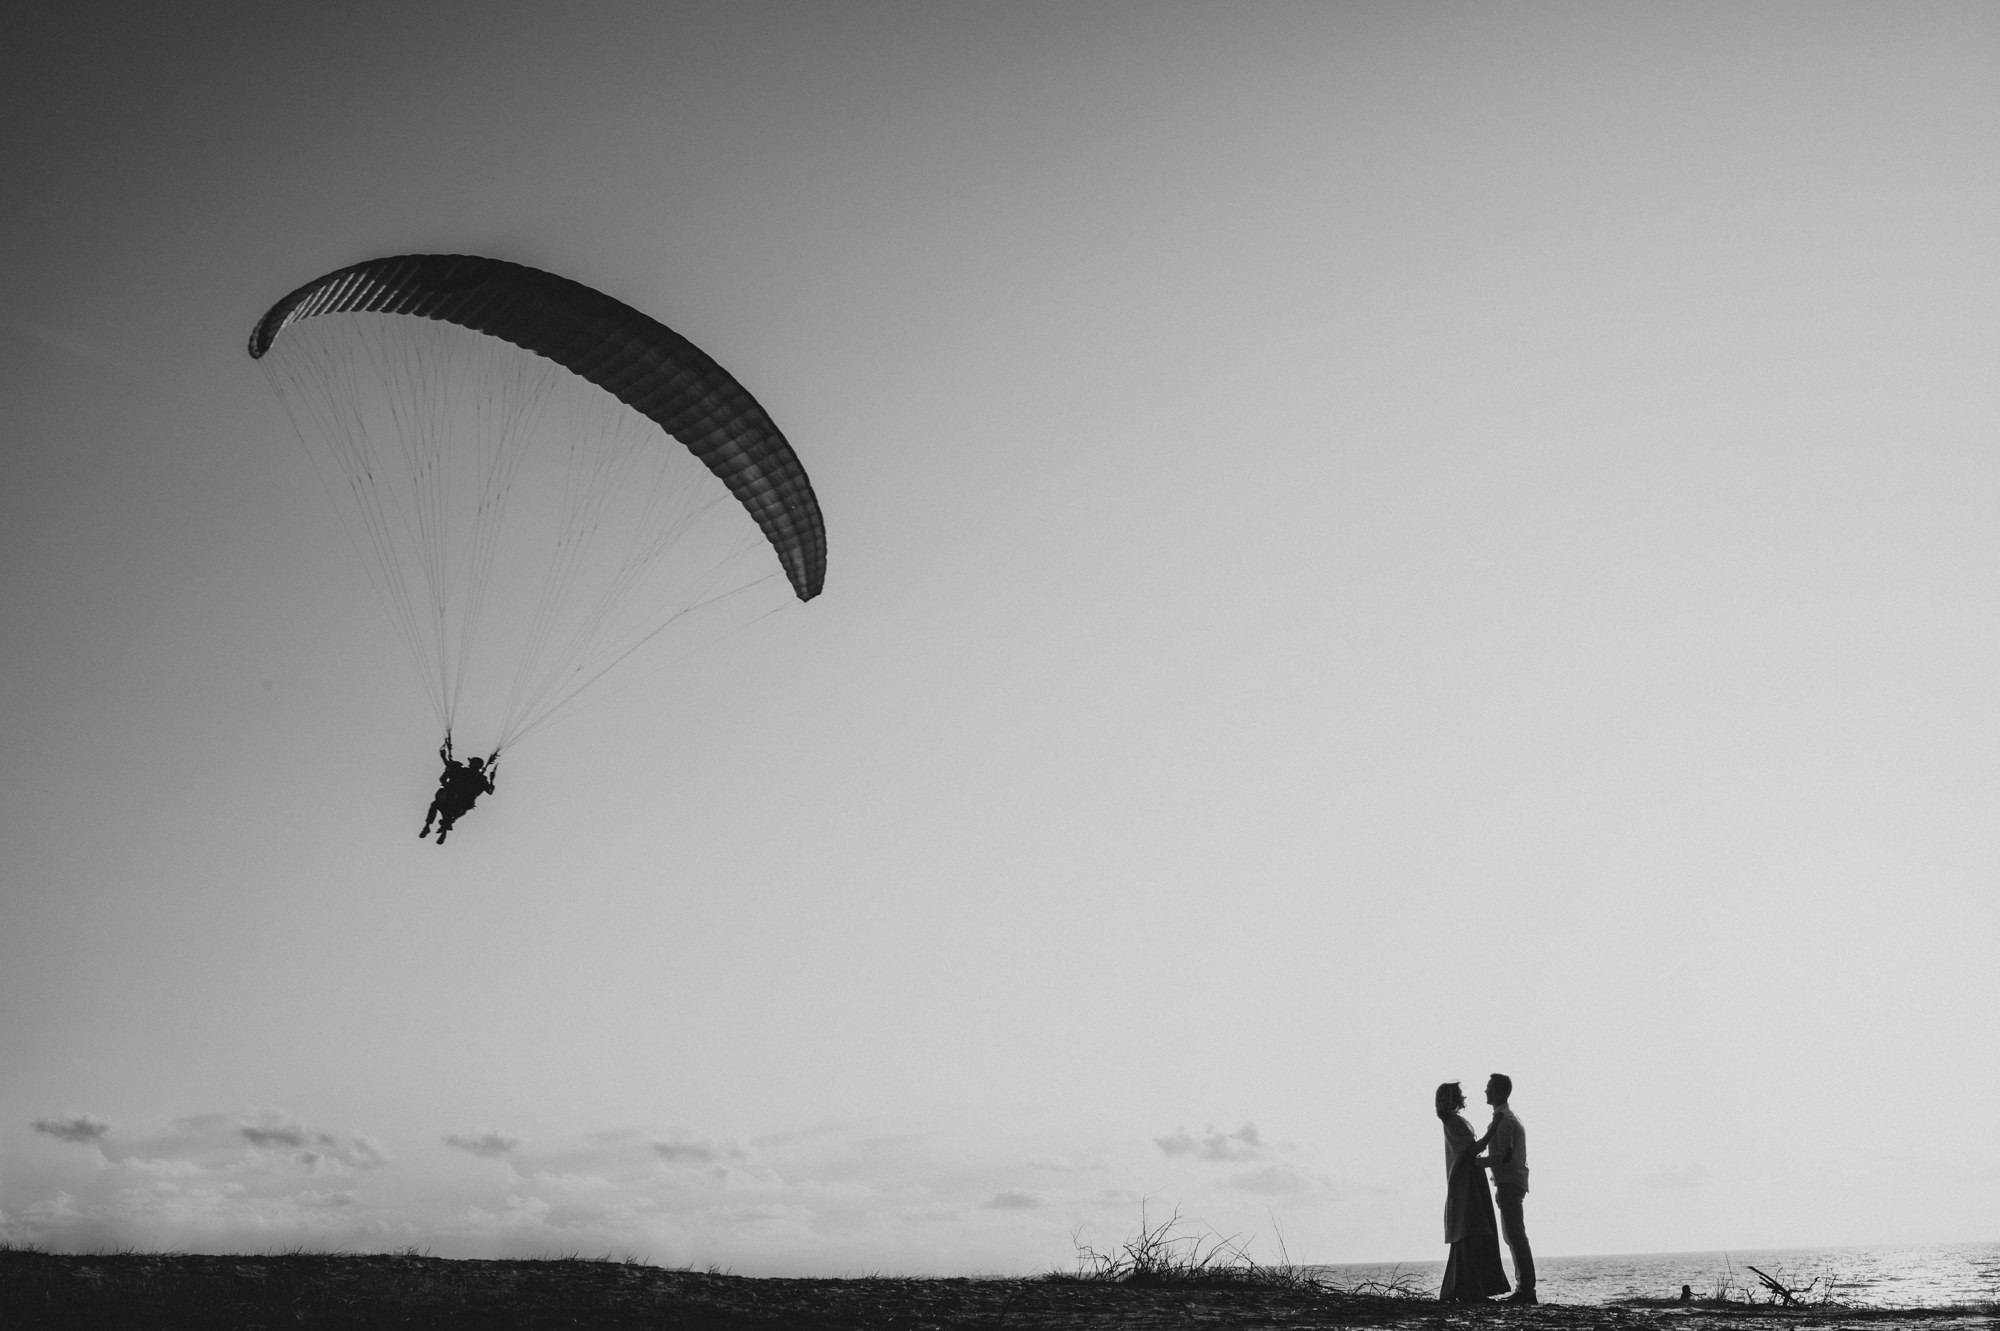 beach-paragliding-engagement-pictures-by-Gabriele-Stonyte-Photography